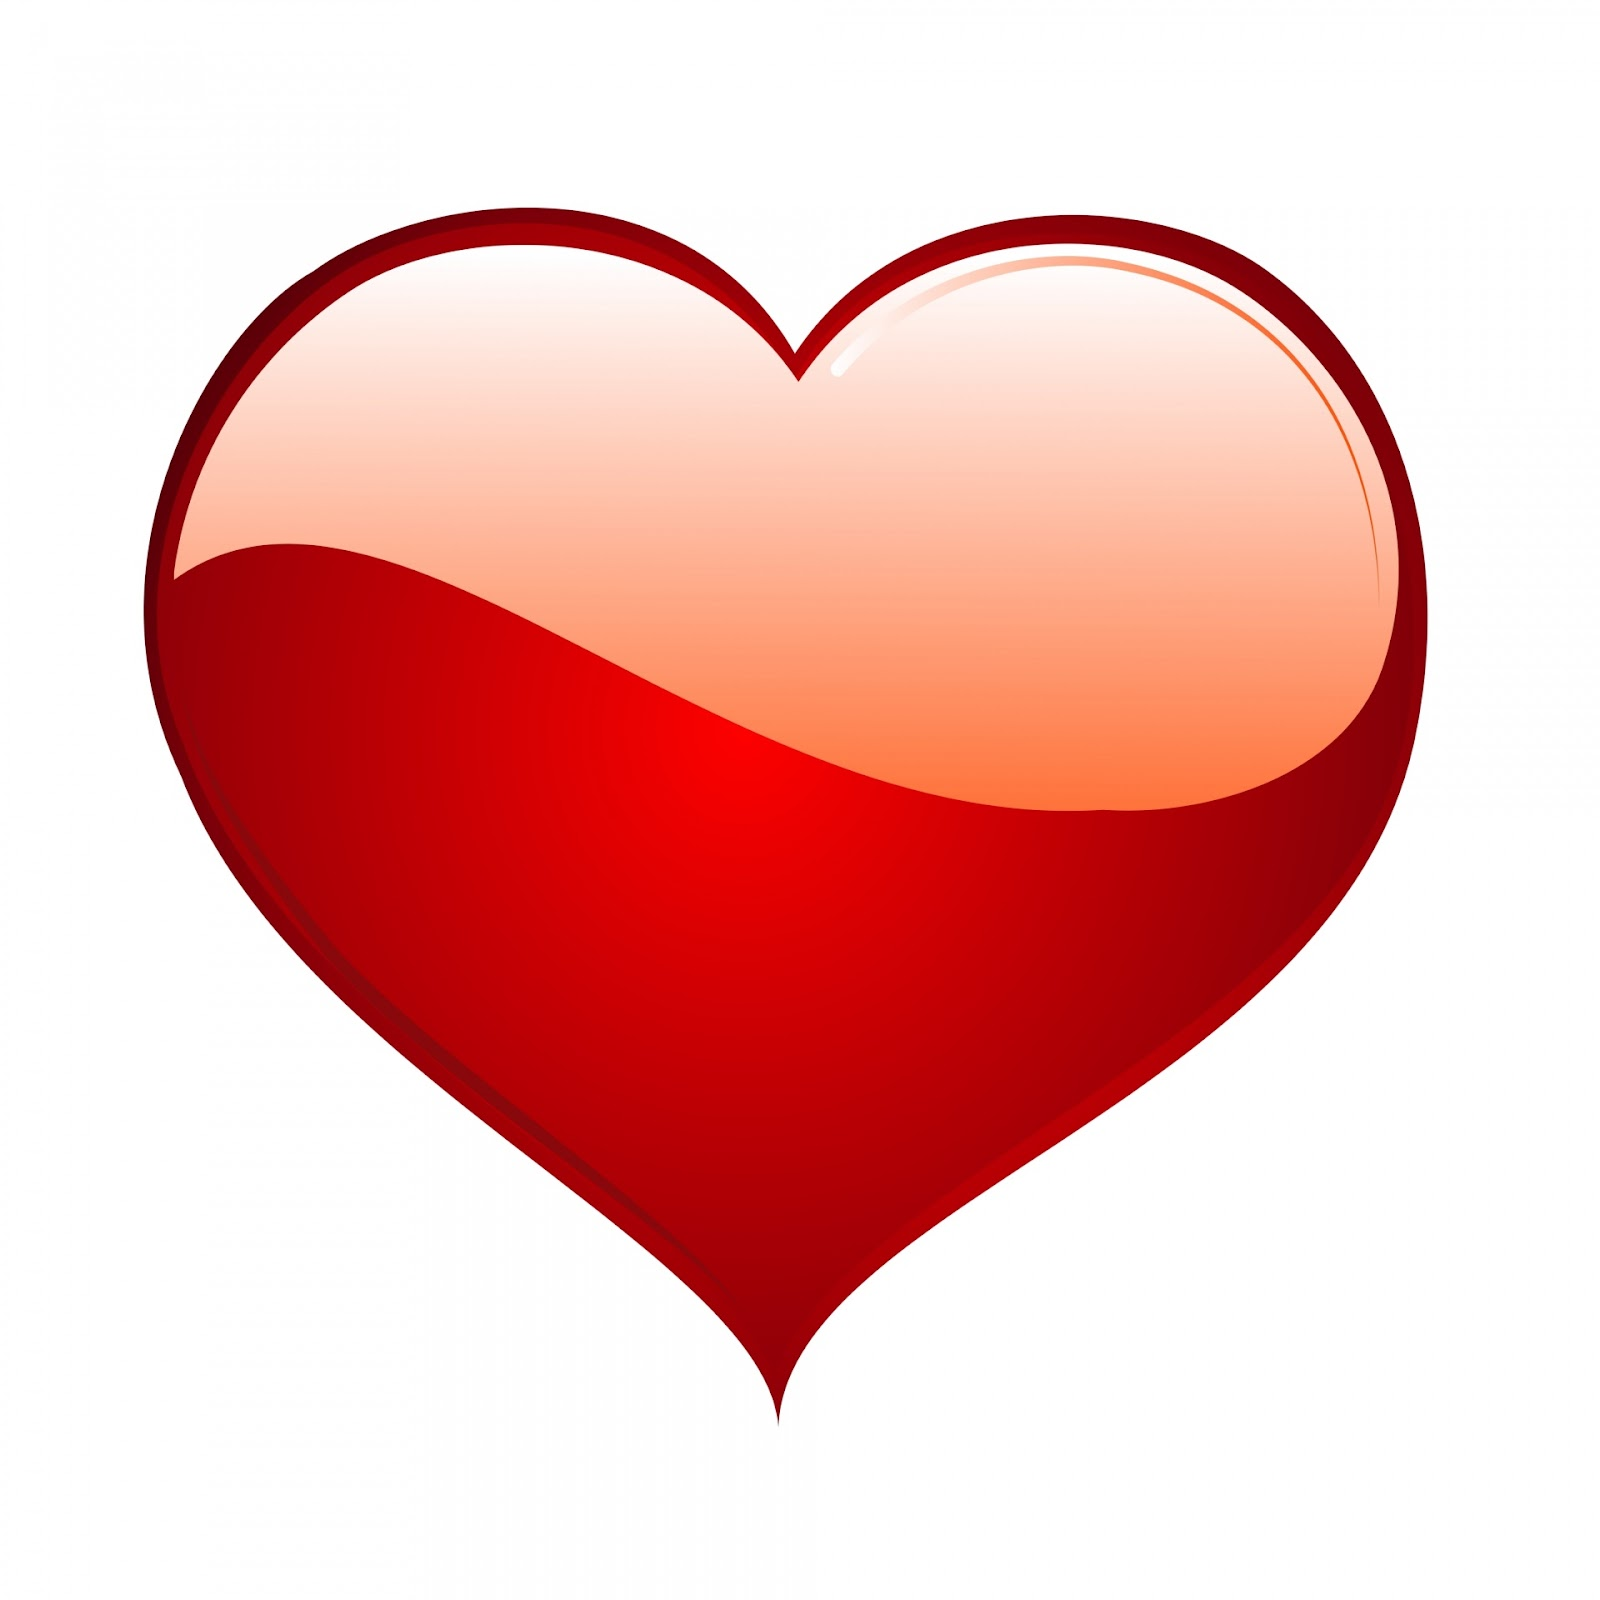 Red Heart Free Stock Photo - Public Domain Pictures